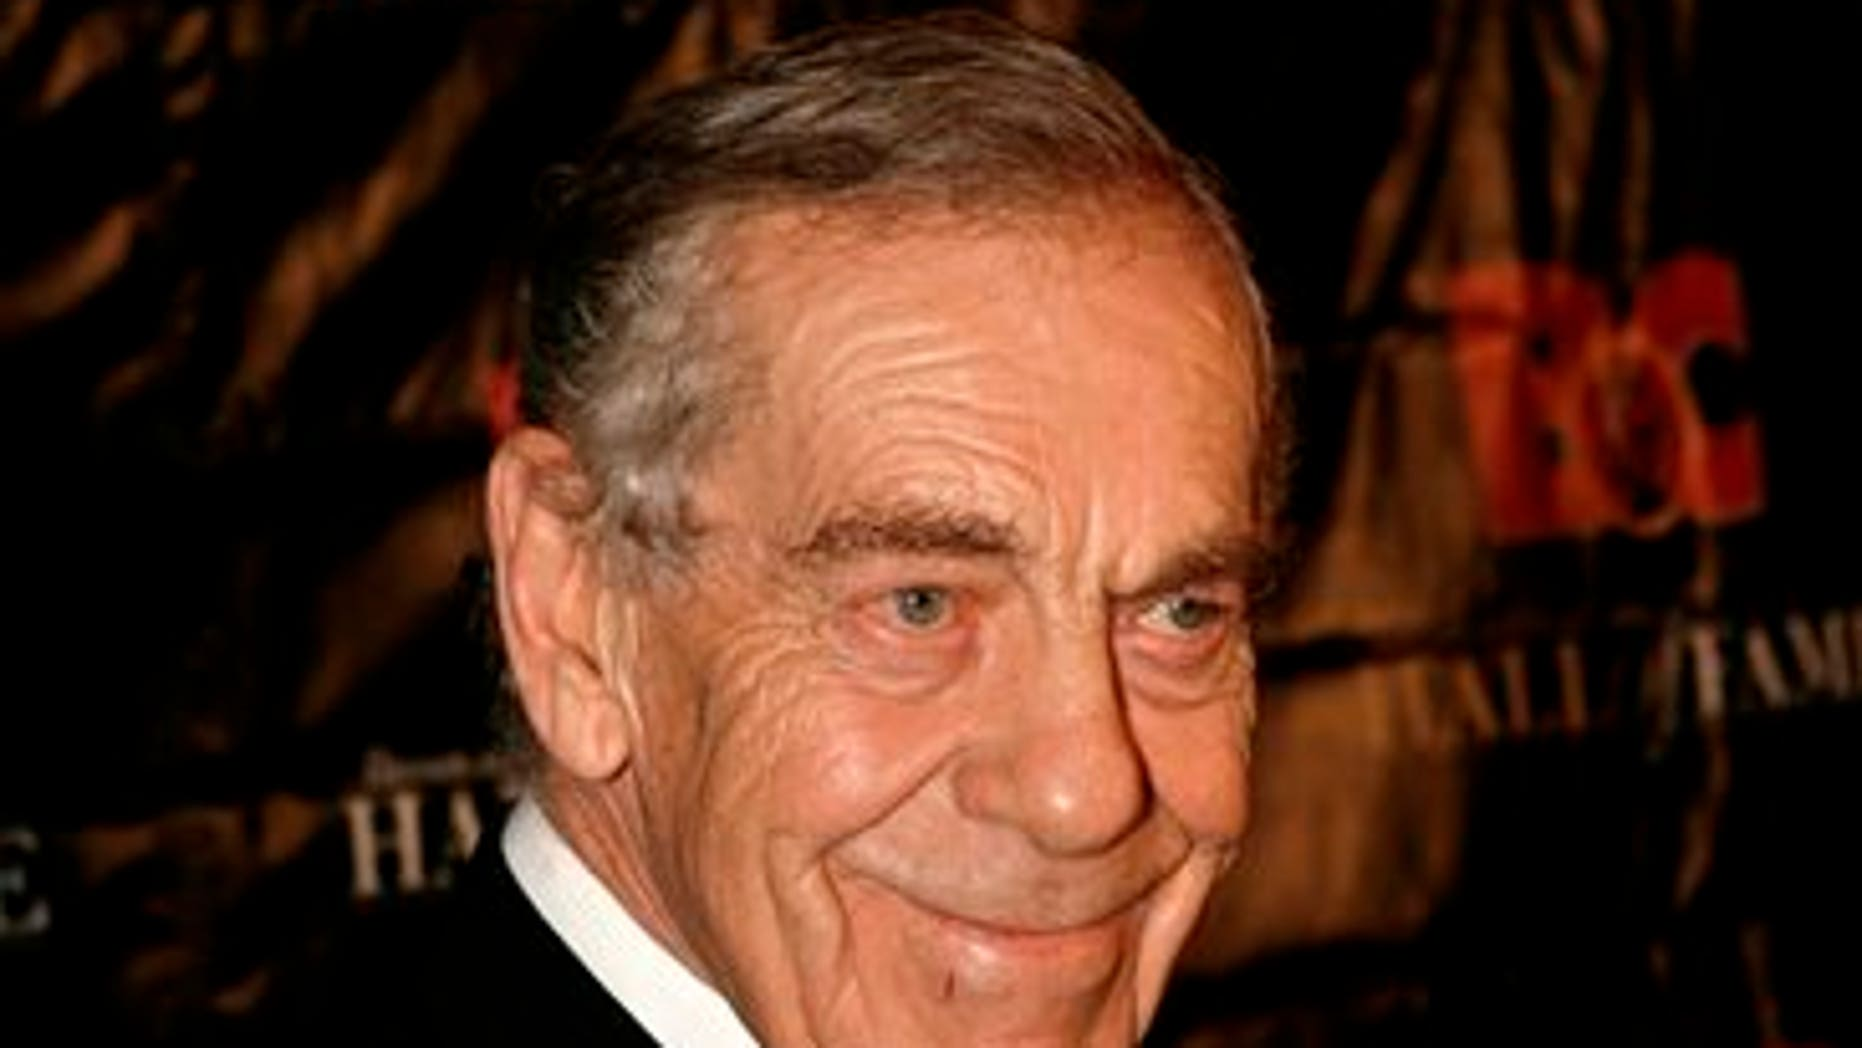 In this Oct. 21, 2008 file photo, Morley Safer poses for a picture during the Broadcasting and Cable Hall of Fame Awards in New York.